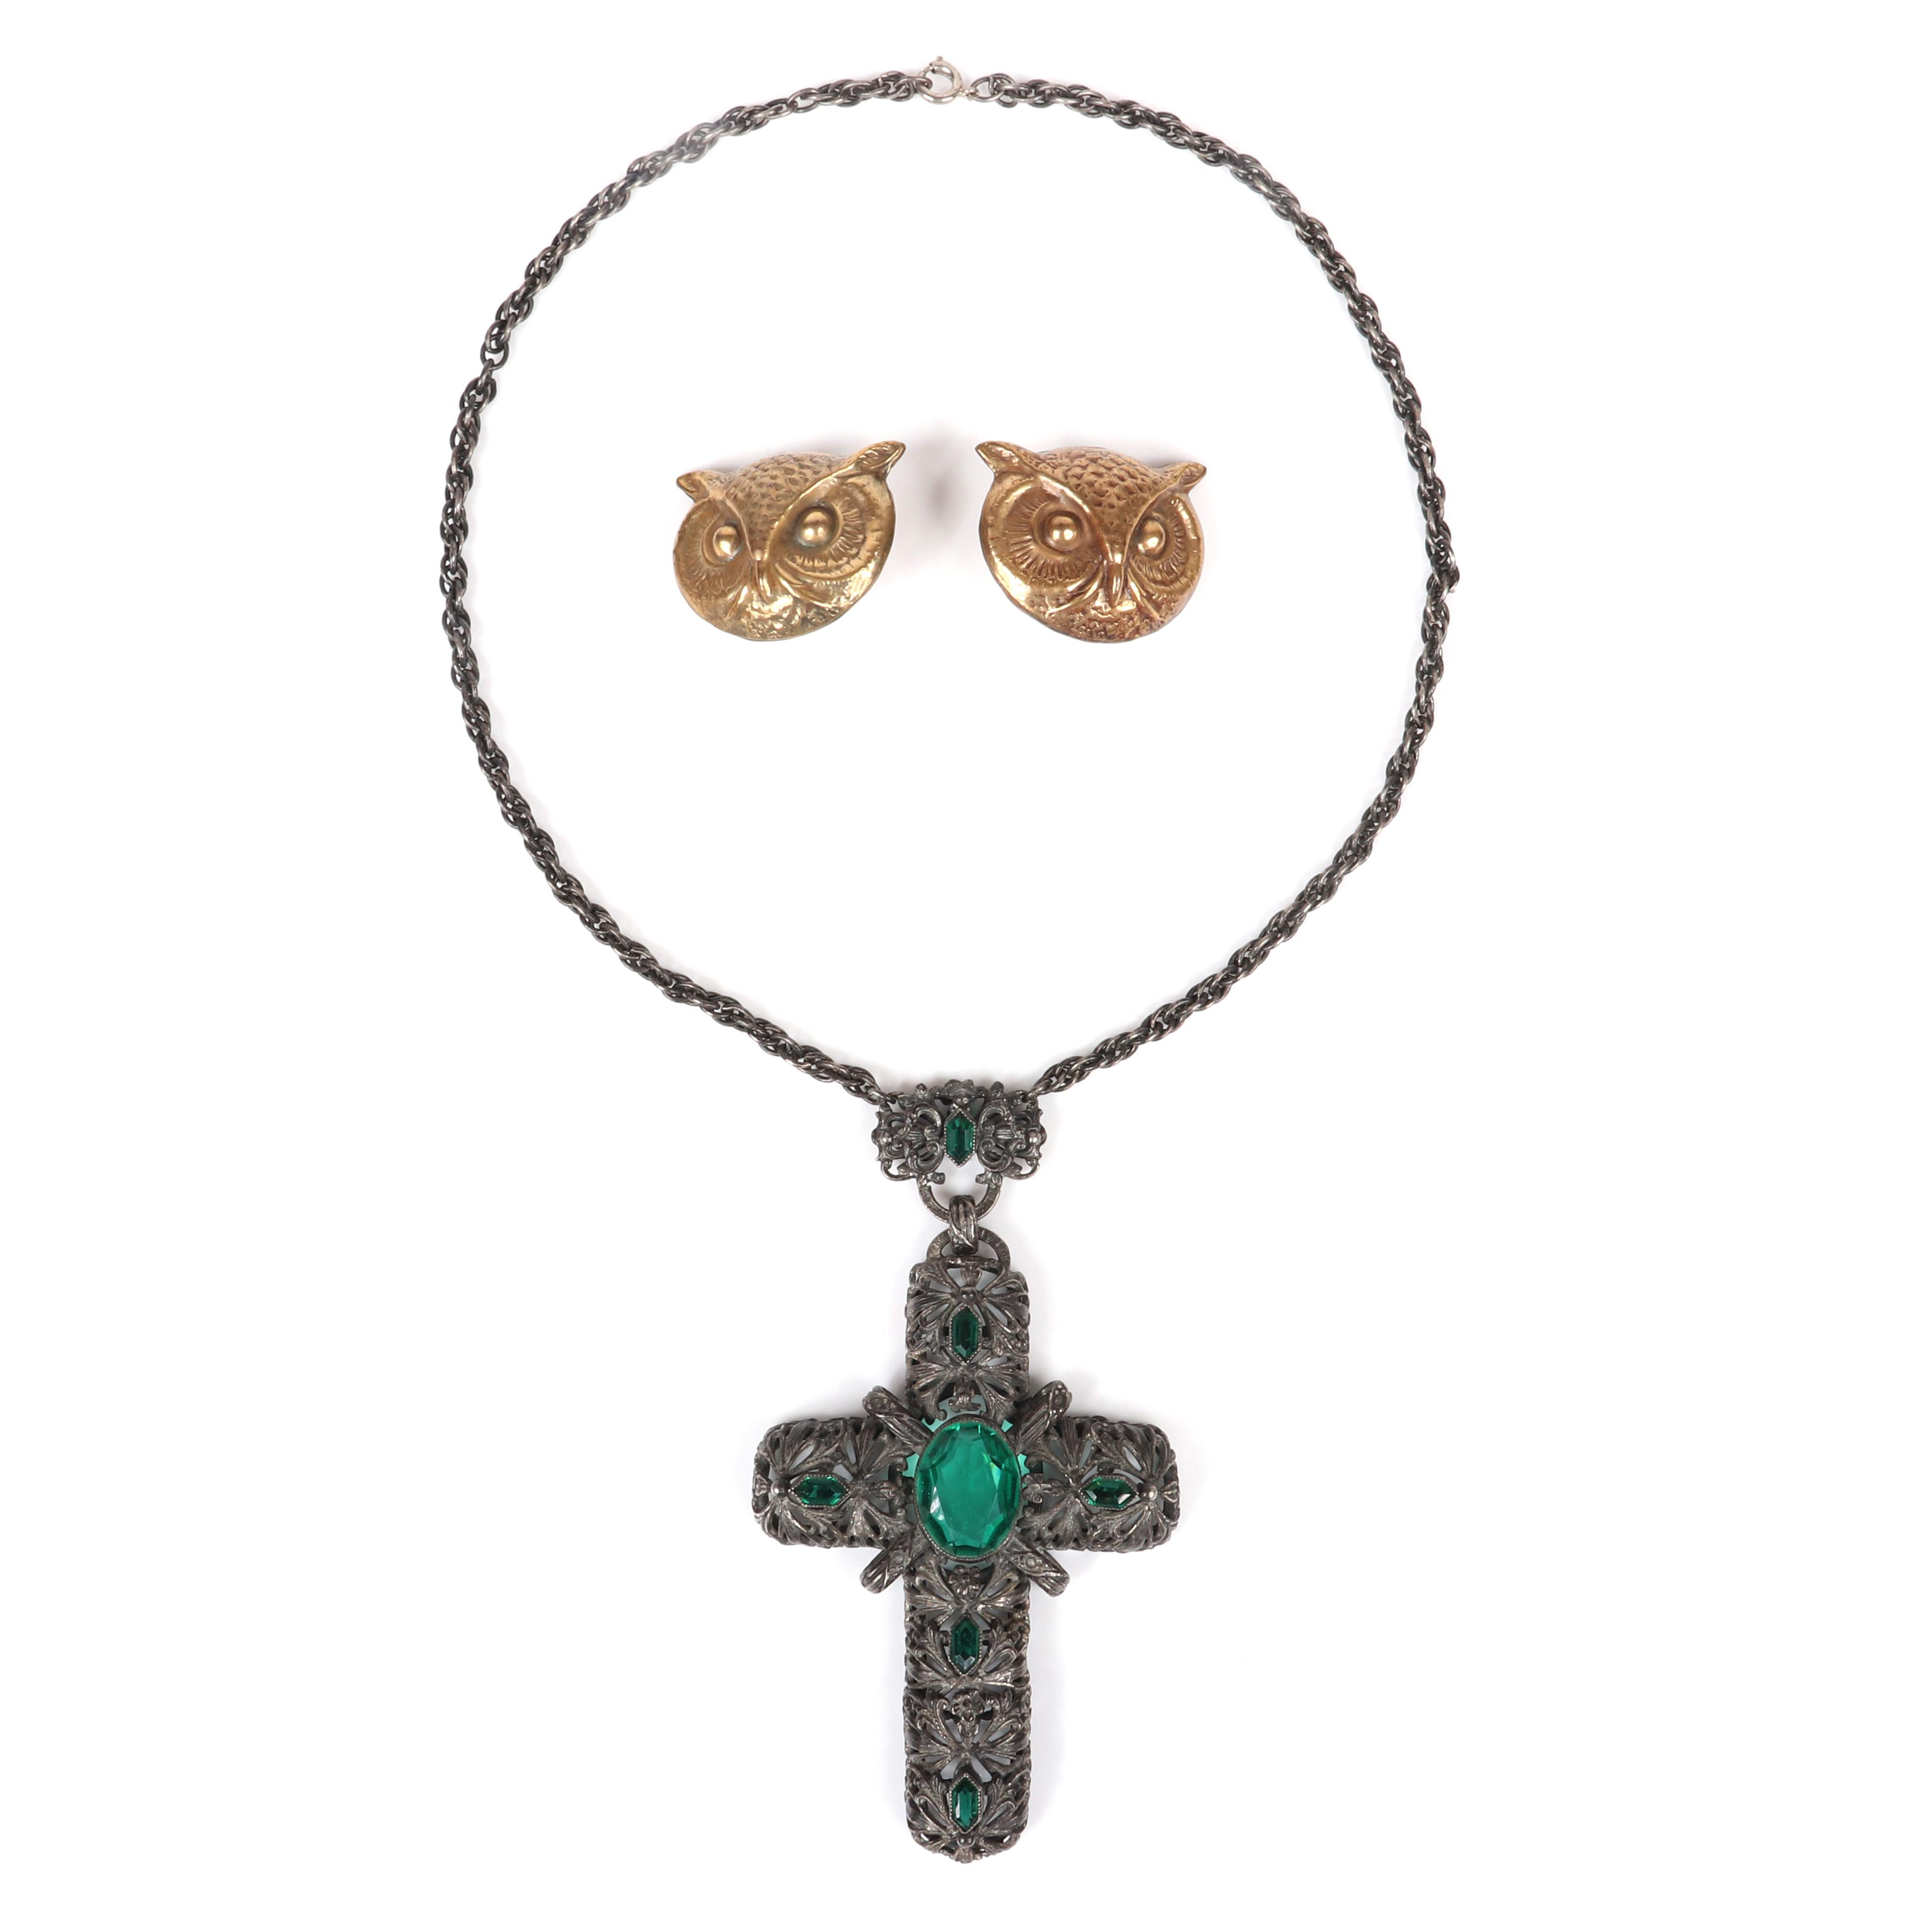 "Joseff of Hollywood large gold tone brass repousse owl head earrings and antiqued silver tone necklace with large openwork cross pendant and faceted emerald crystals. 1 1/4""H x 1 1/2""W (owls), 18""L (necklace), 4 1/2""H..."